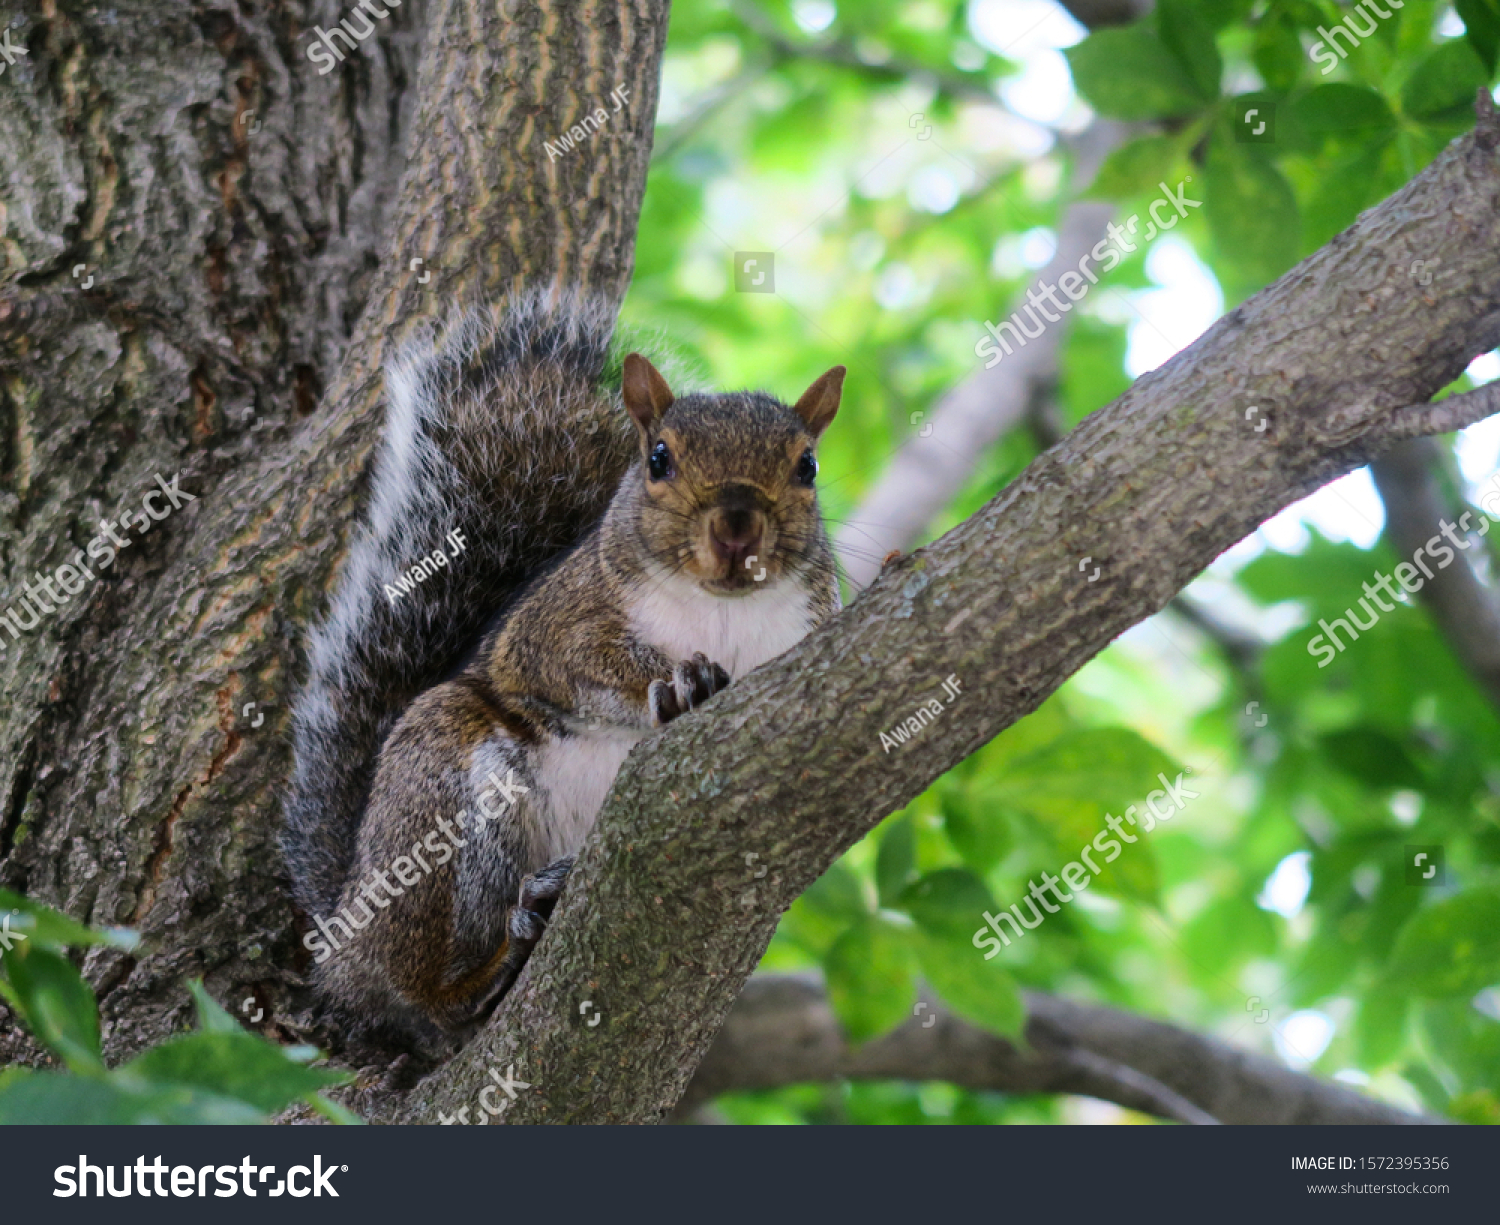 Cute squirrel on a tree branch